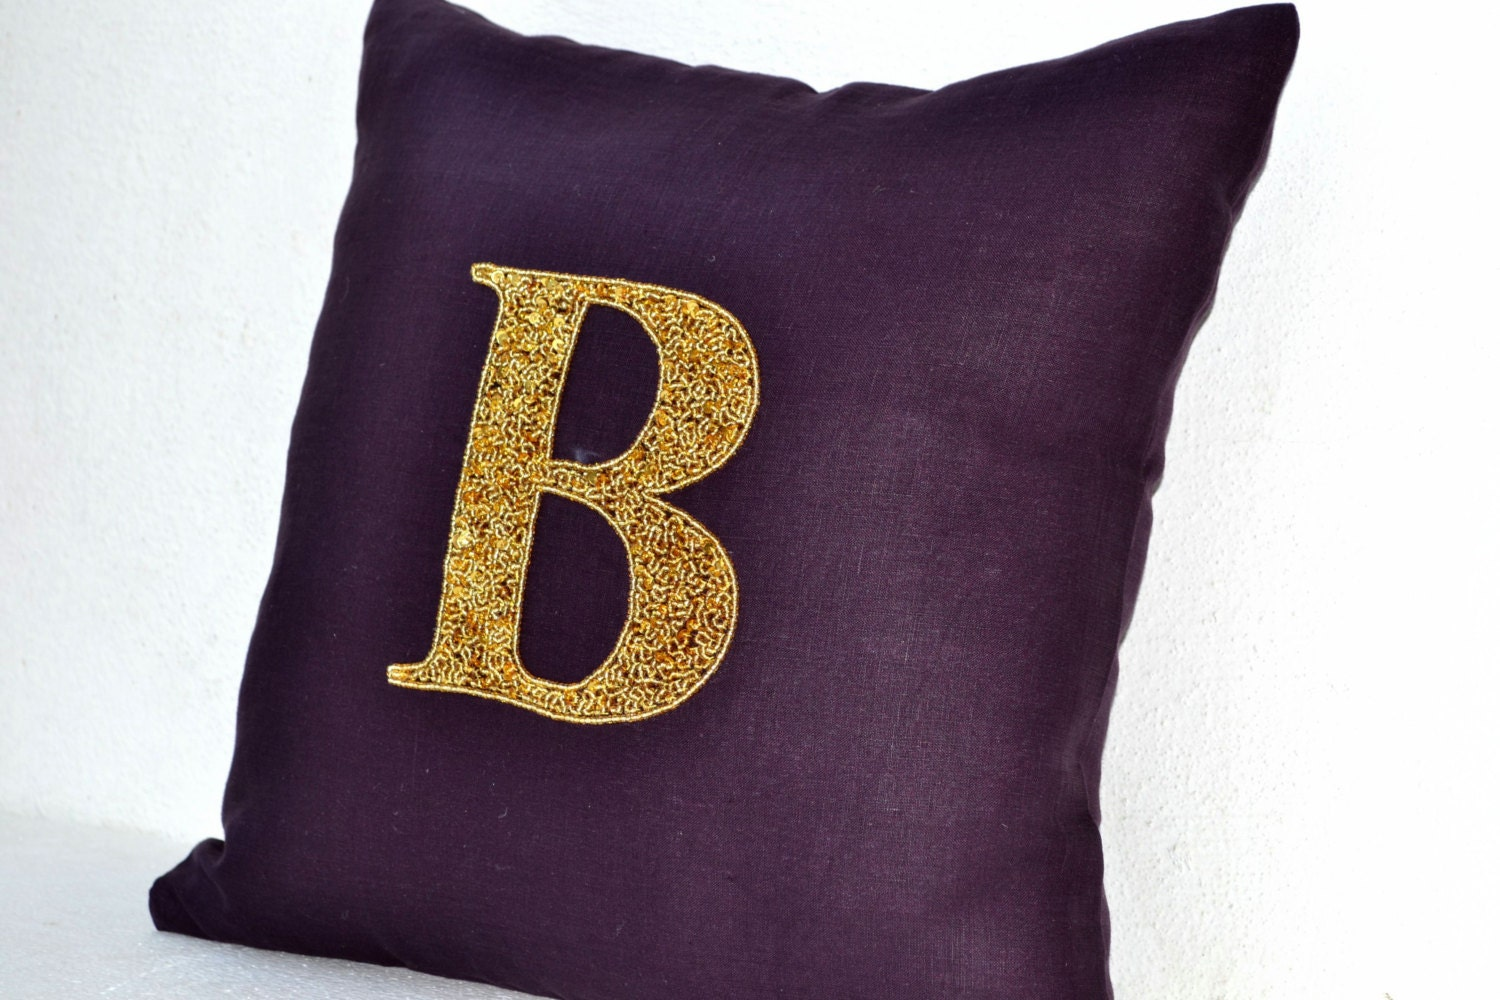 Monogram Pillows Personalized throw pillows Gold by AmoreBeaute